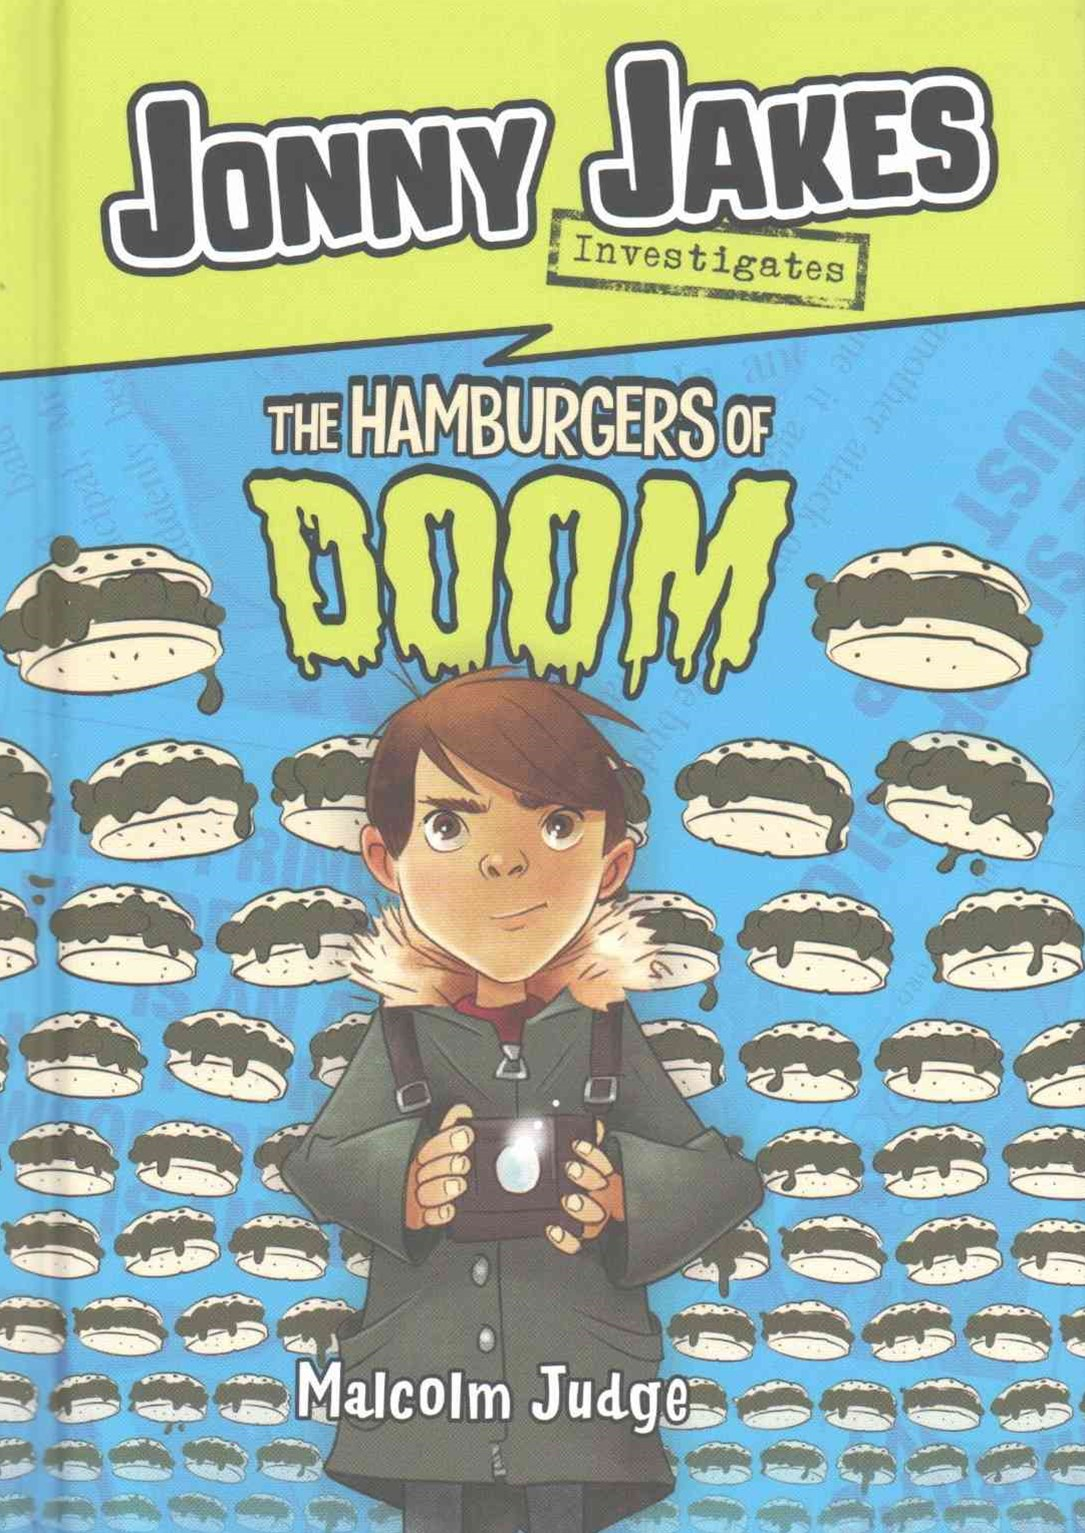 Jonny Jakes Investigates the Hamburgers of Doom